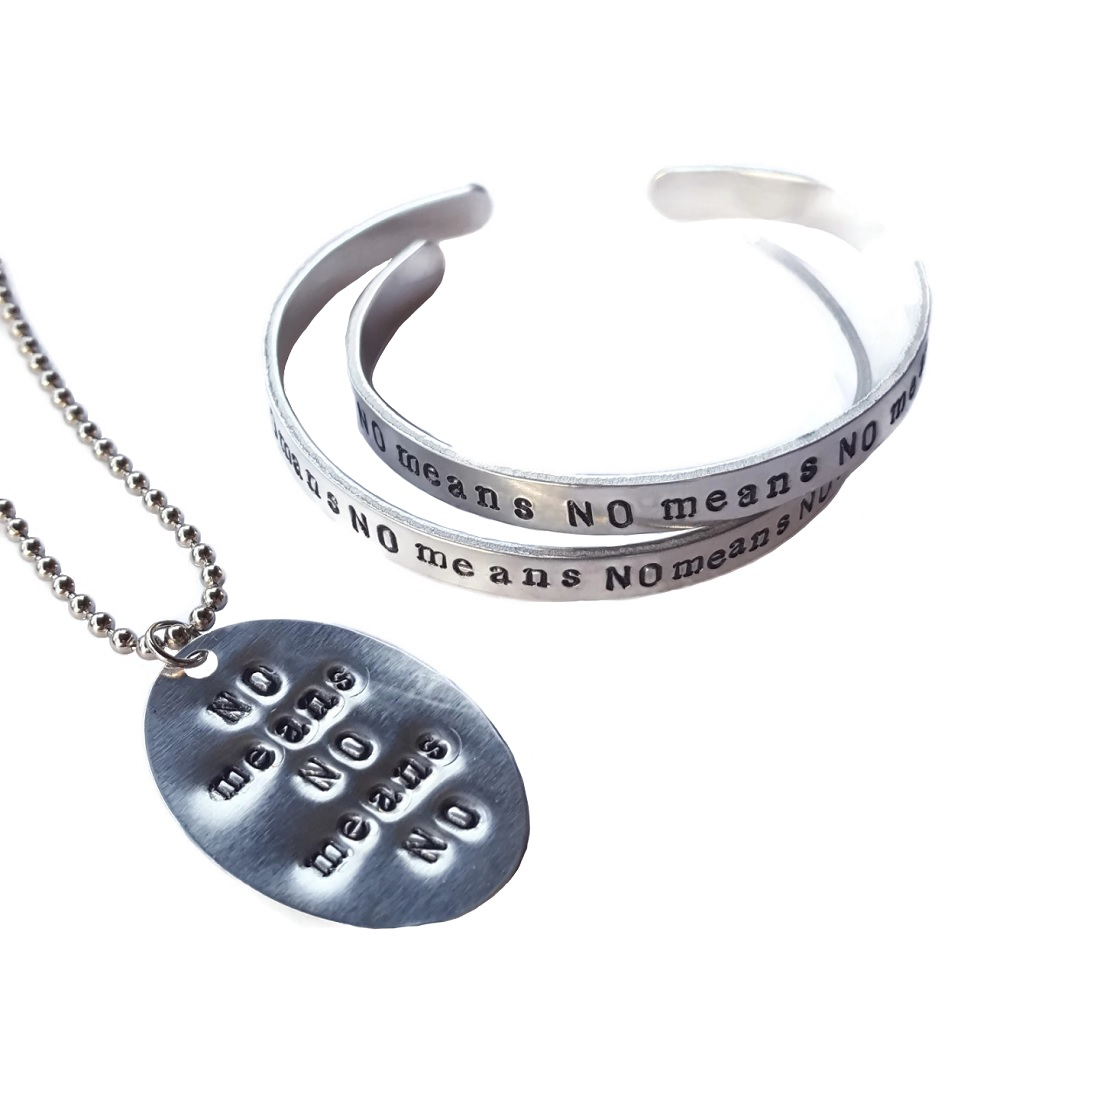 No Means No feminist bracelet and necklace set